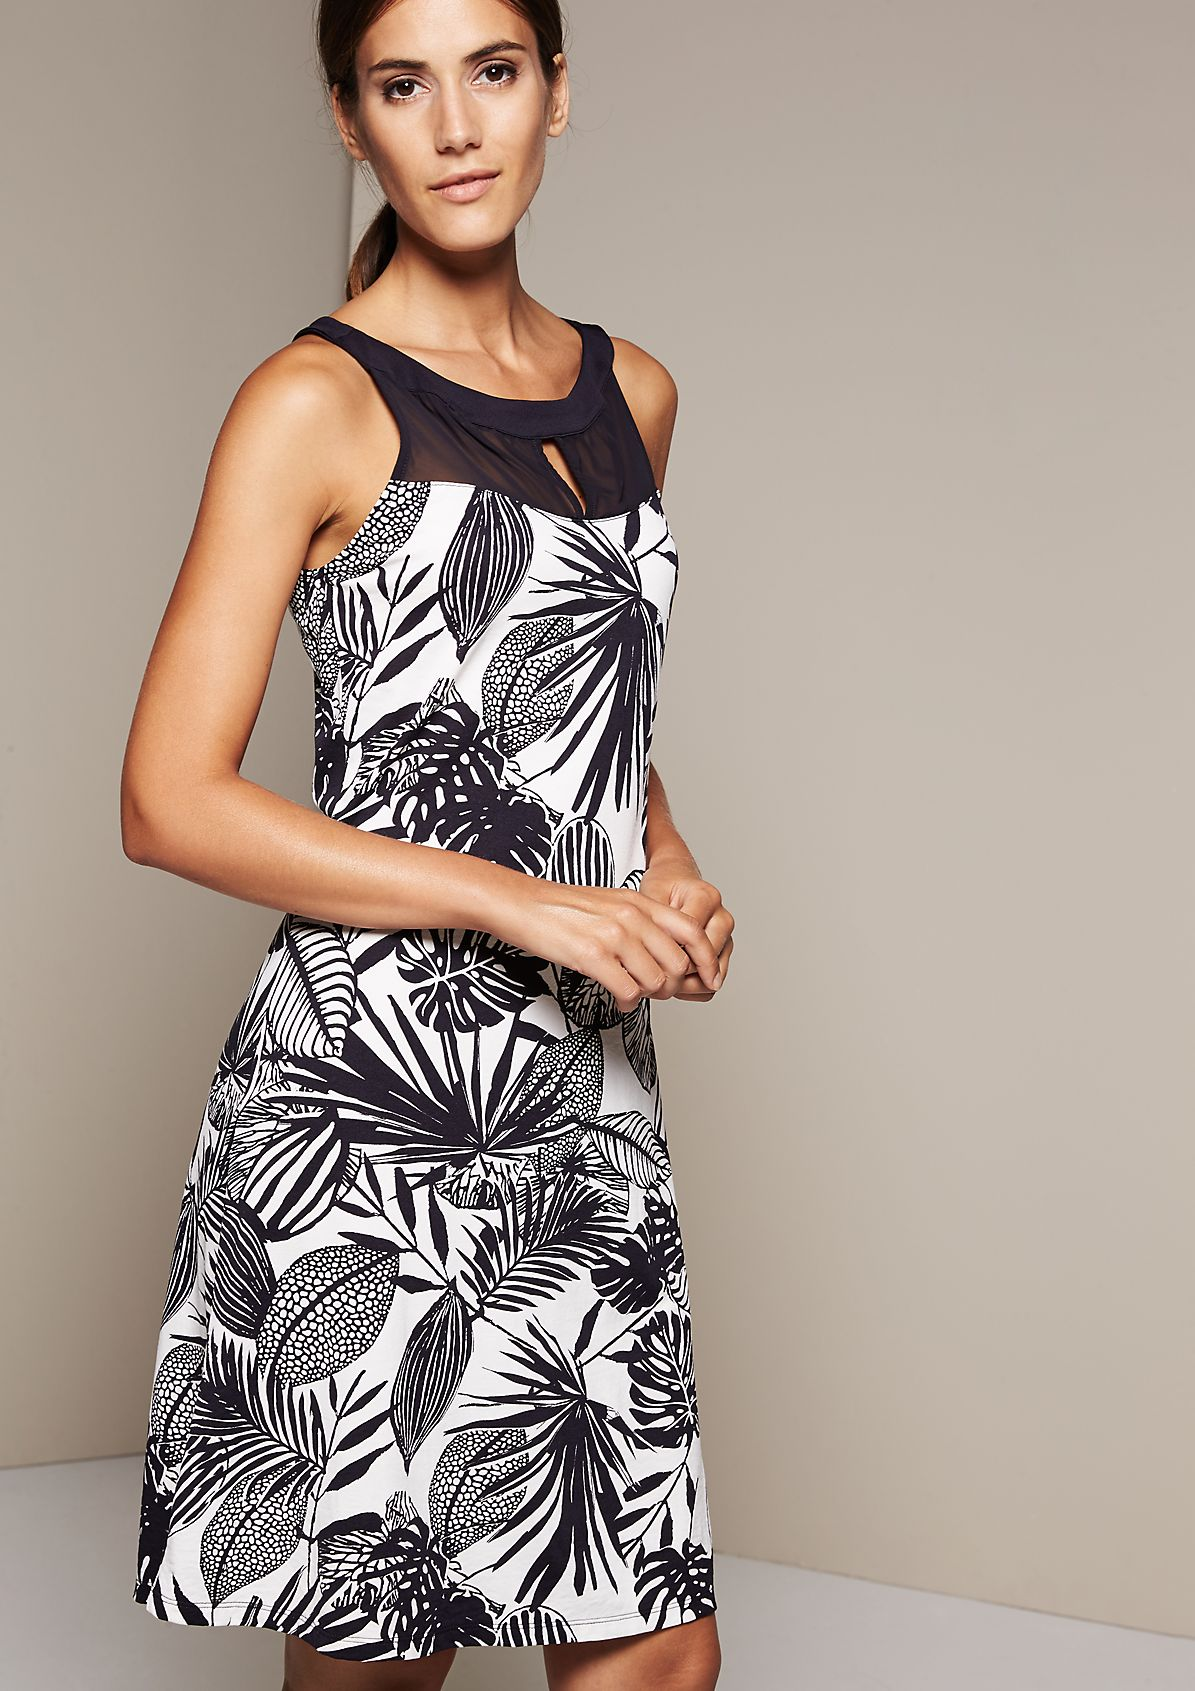 Casual summer dress with a beautiful, all-over printed pattern from s.Oliver